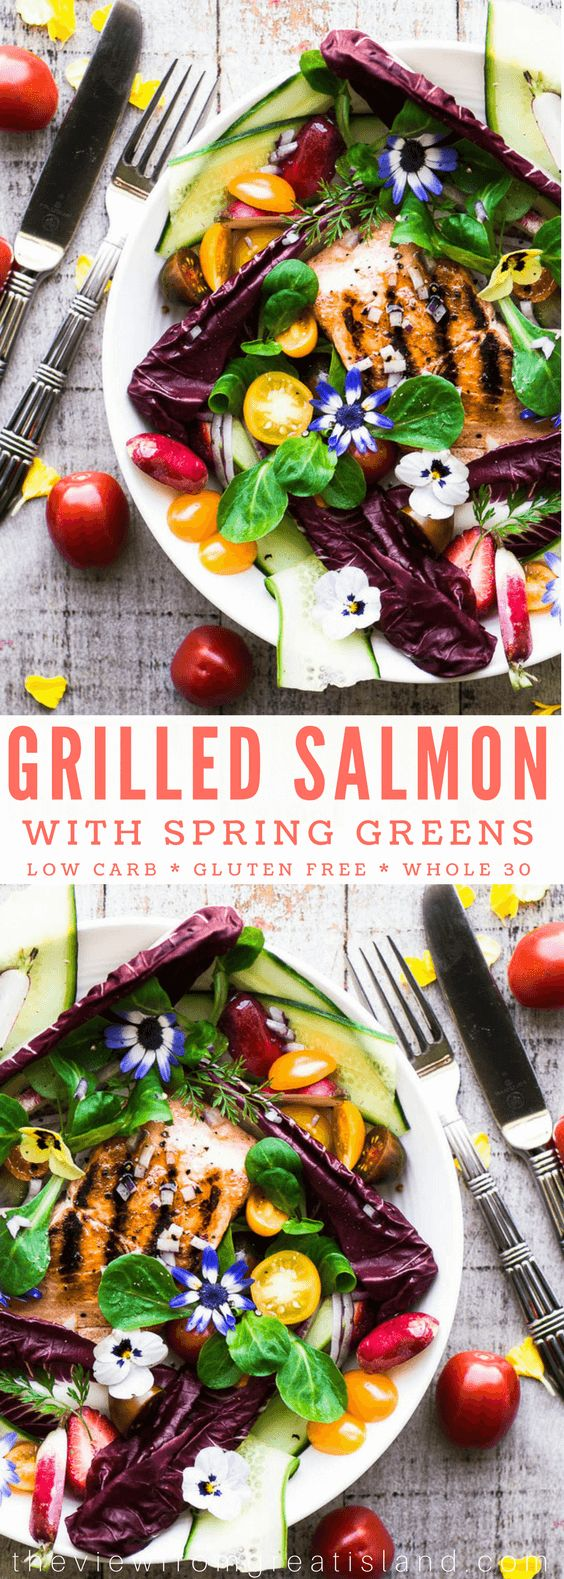 This Grilled Salmon Salad with spring greens and edible flowers is one of my favorite ways to eat fresh grilled fish like salmon, ahi, or halibut. This meal is low carb, gluten free, paleo, whole 30, and really satisfying. #salmon #grilledfish #fish #seafood #salmonsalad #springsalad #mothersday #brunch #lunch #glutenfree #whole30 #weightwatchers #lowcalorie #lowfat #lowcarb #mediterraneandiet #maincoursesalad #edibleflowers via @https://www.pinterest.com/slmoran21/